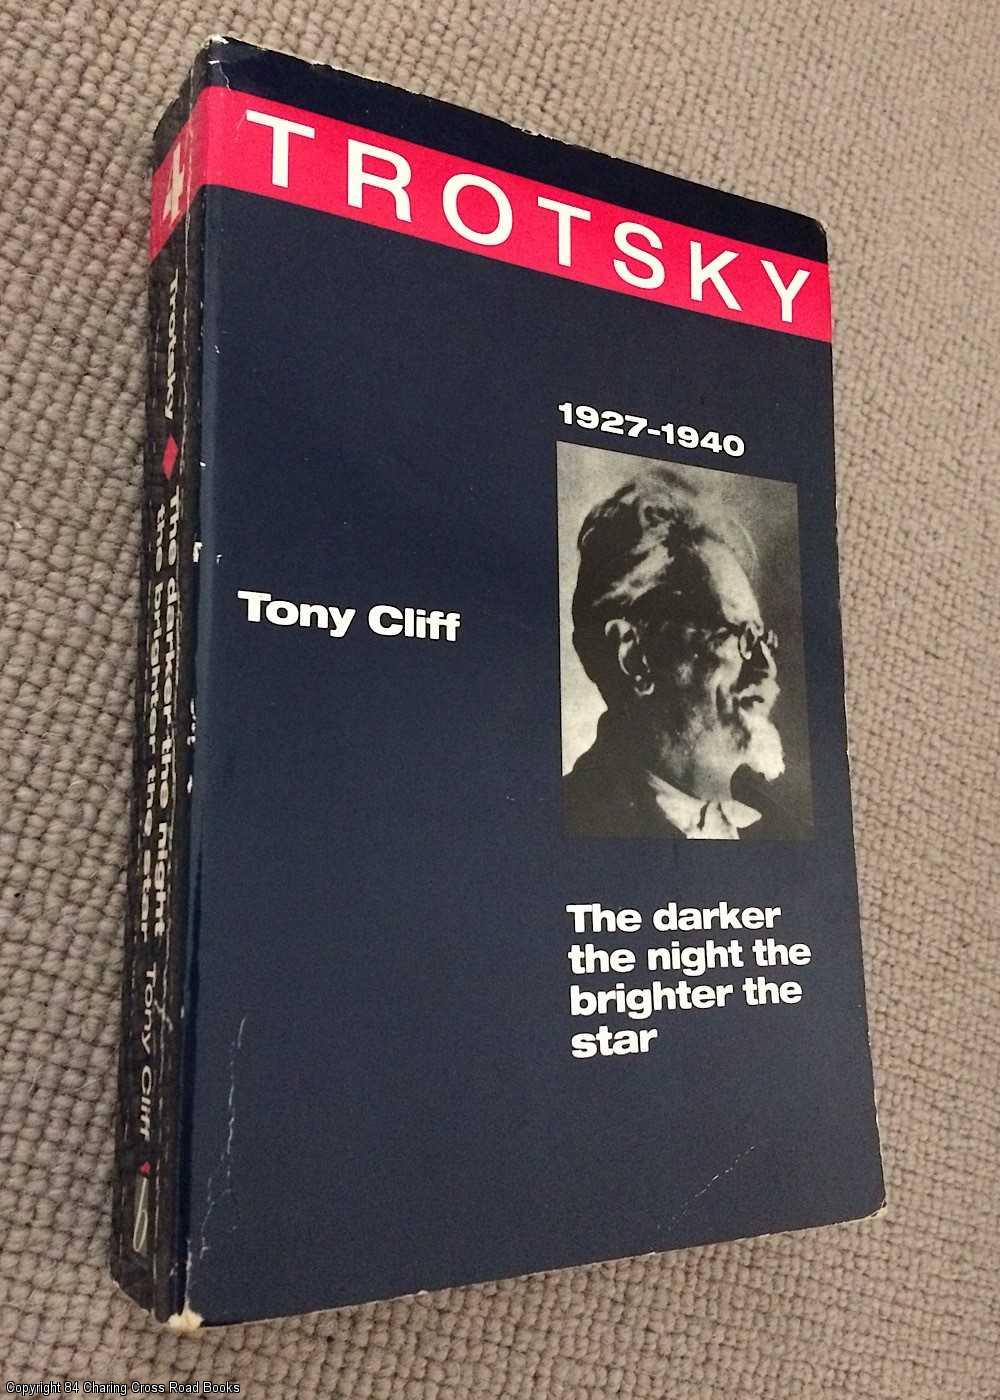 CLIFF, TONY - Trotsky: The Darker the Night, the Brighter the Star, 1927 - 1940 vol 4